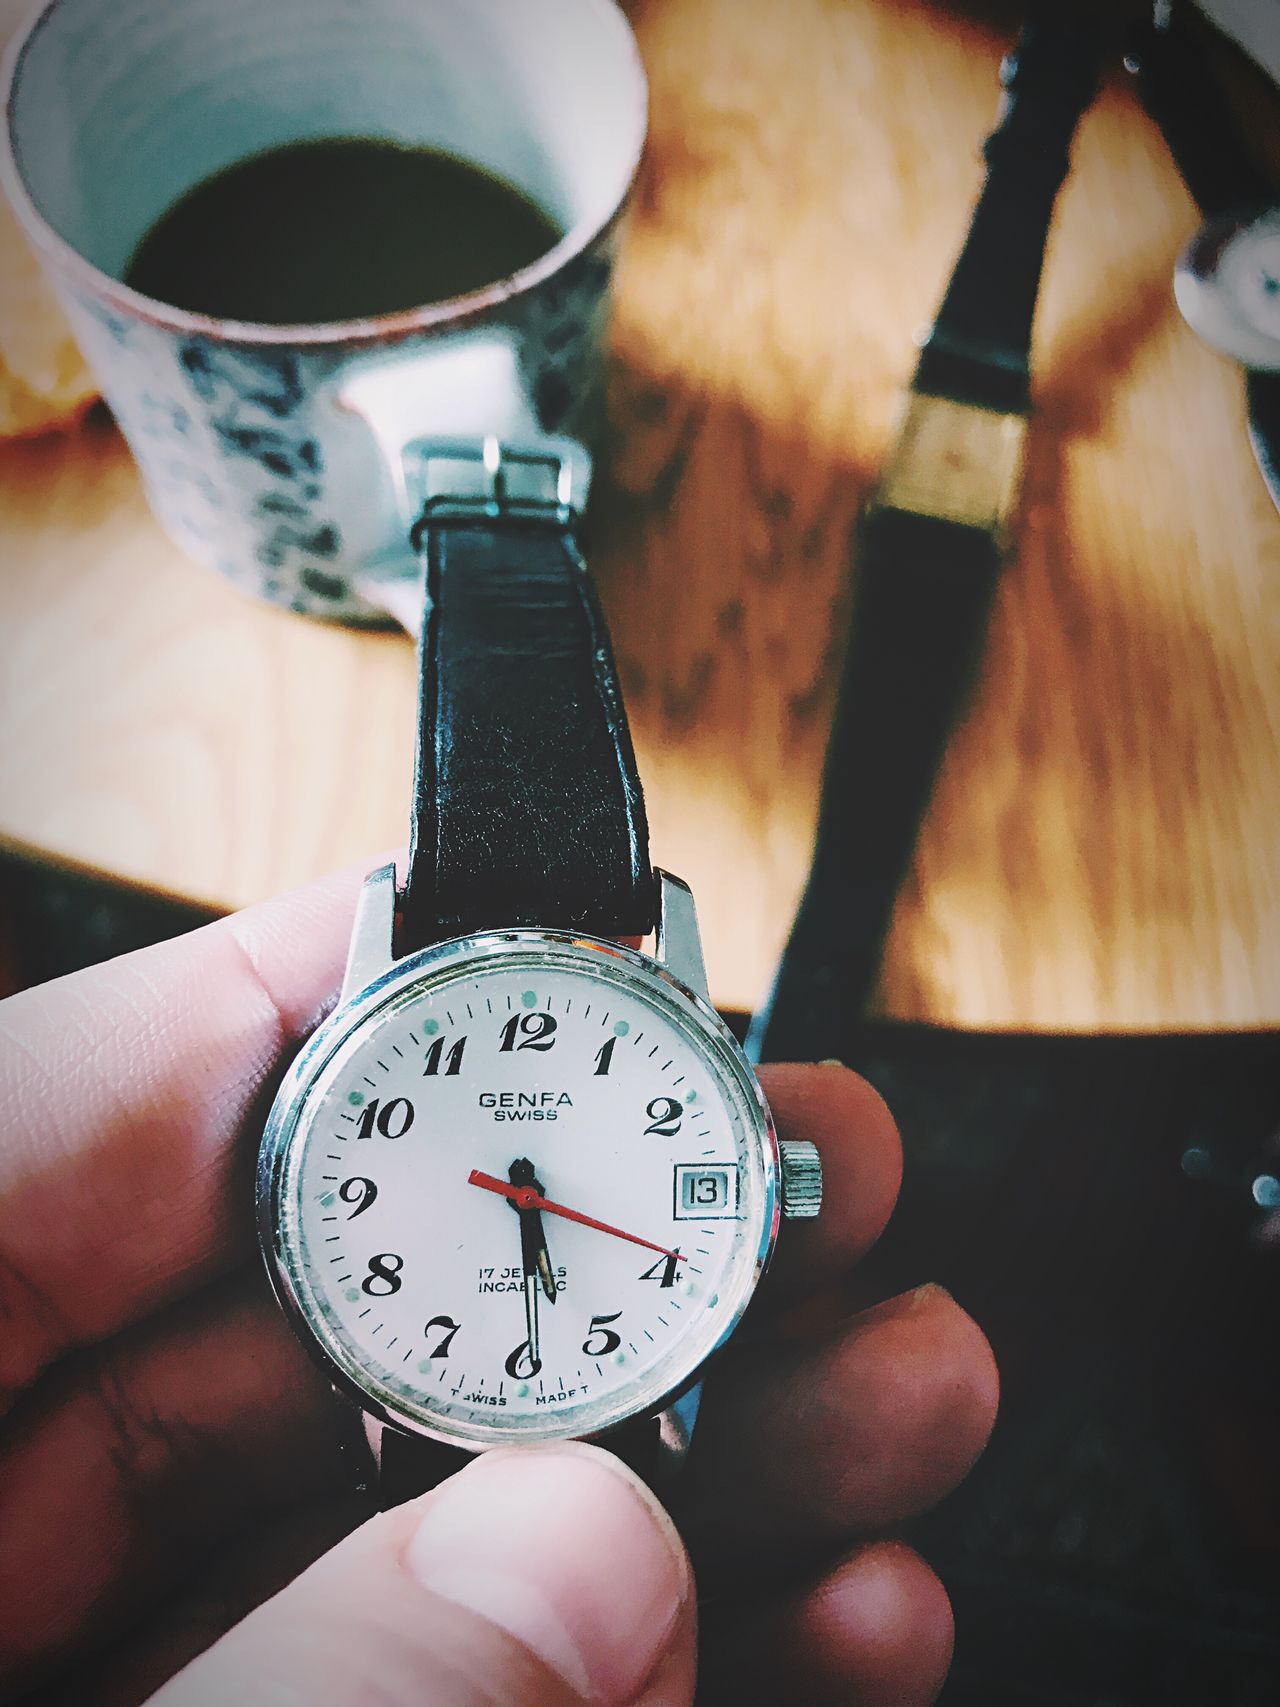 Only time will tell... Time Human Hand Human Body Part One Person Holding Real People Human Finger Clock Indoors  Close-up Day Clock Face Minute Hand People Watch The Clock Clocks Time To Reflect Time To Relax